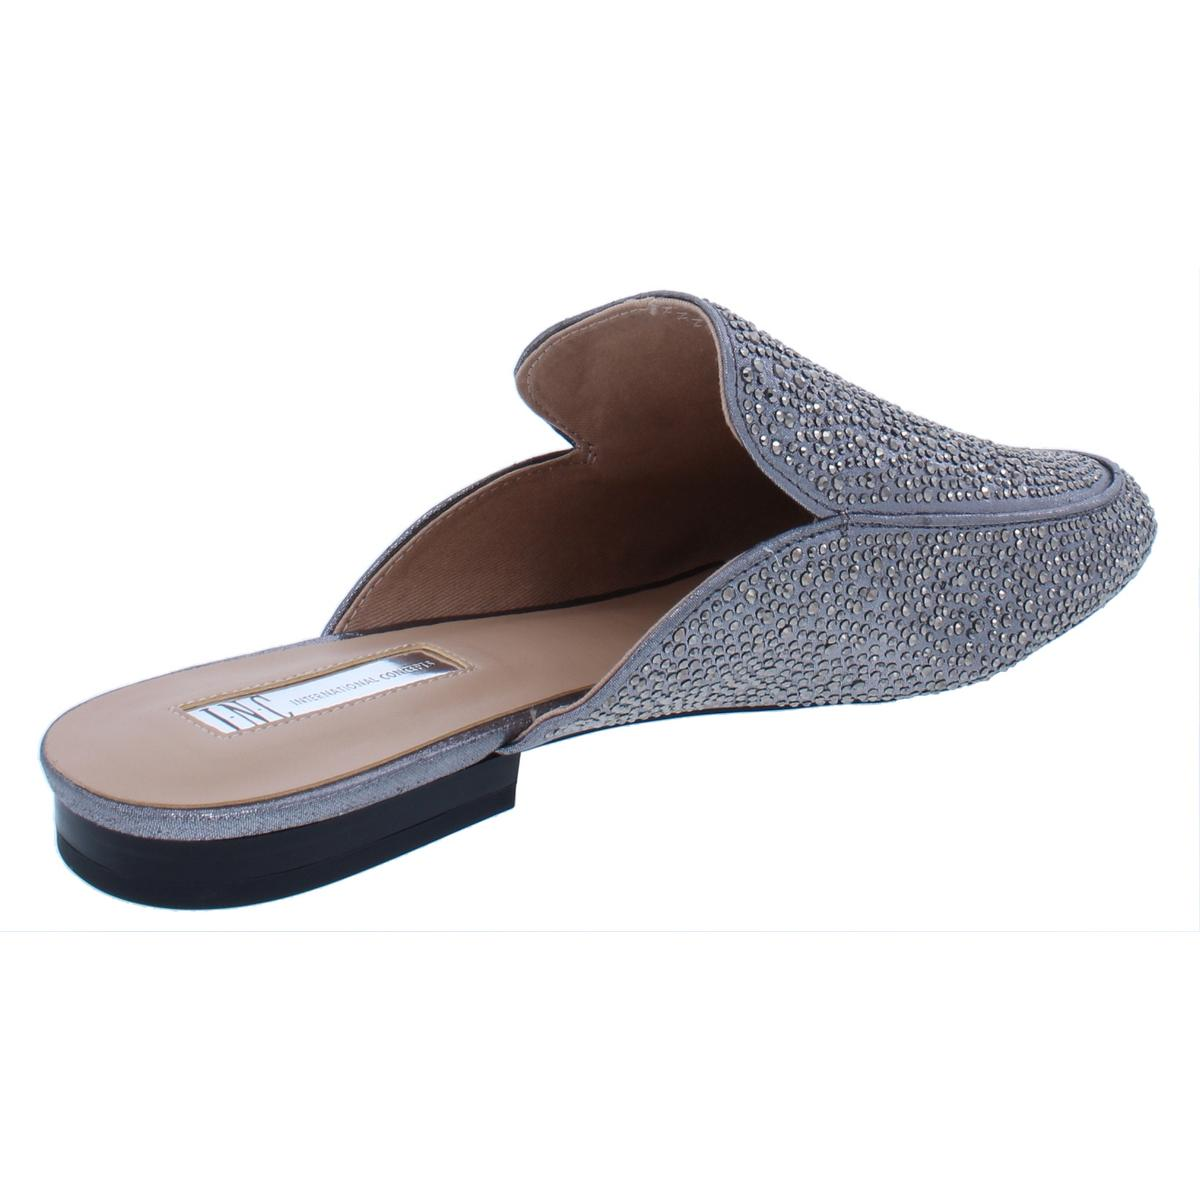 INC-Womens-Gannie12-Embellished-Loafer-Round-Toe-Mules-Flats-BHFO-9730 thumbnail 6